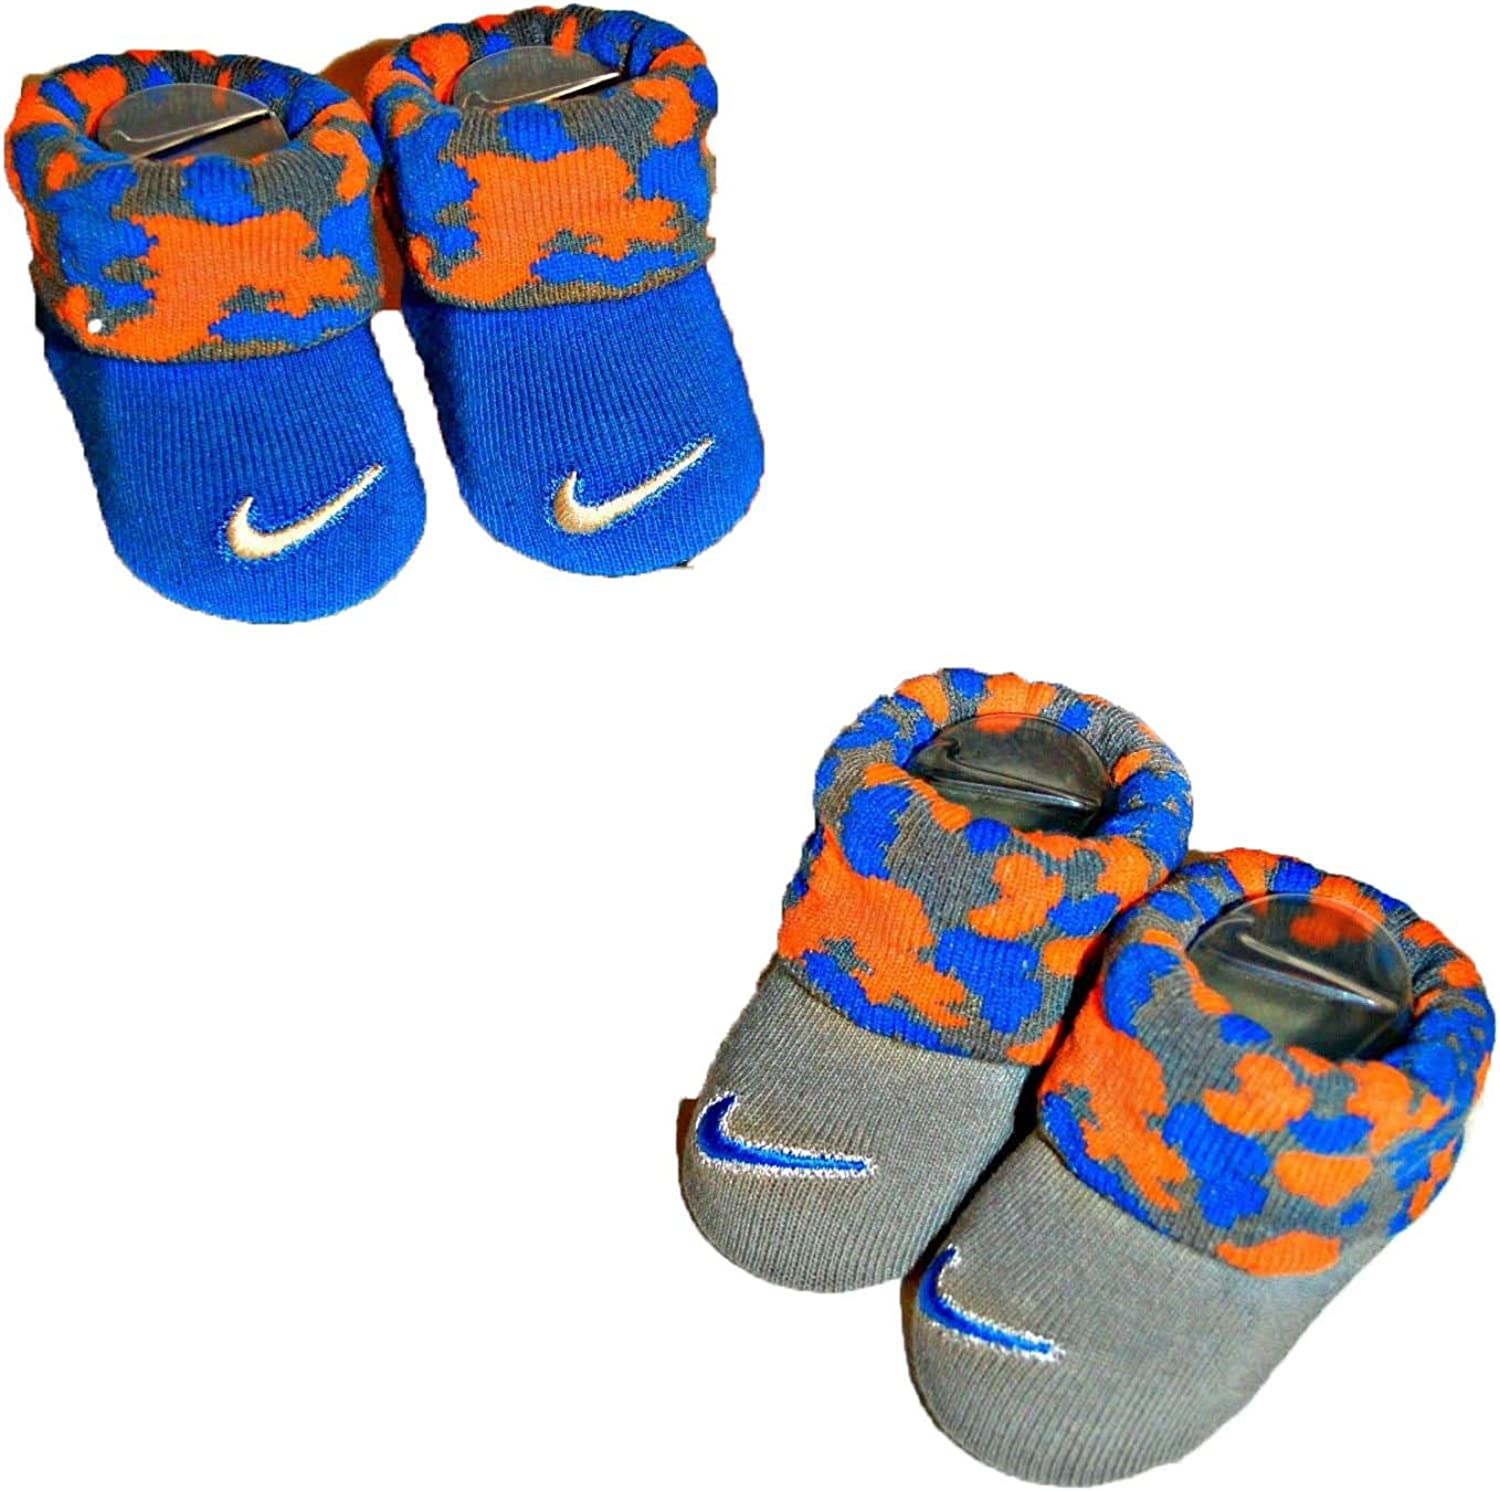 Nike Baby Swoosh 2 Pack Baby Booties for Boys and Girls 0-6M